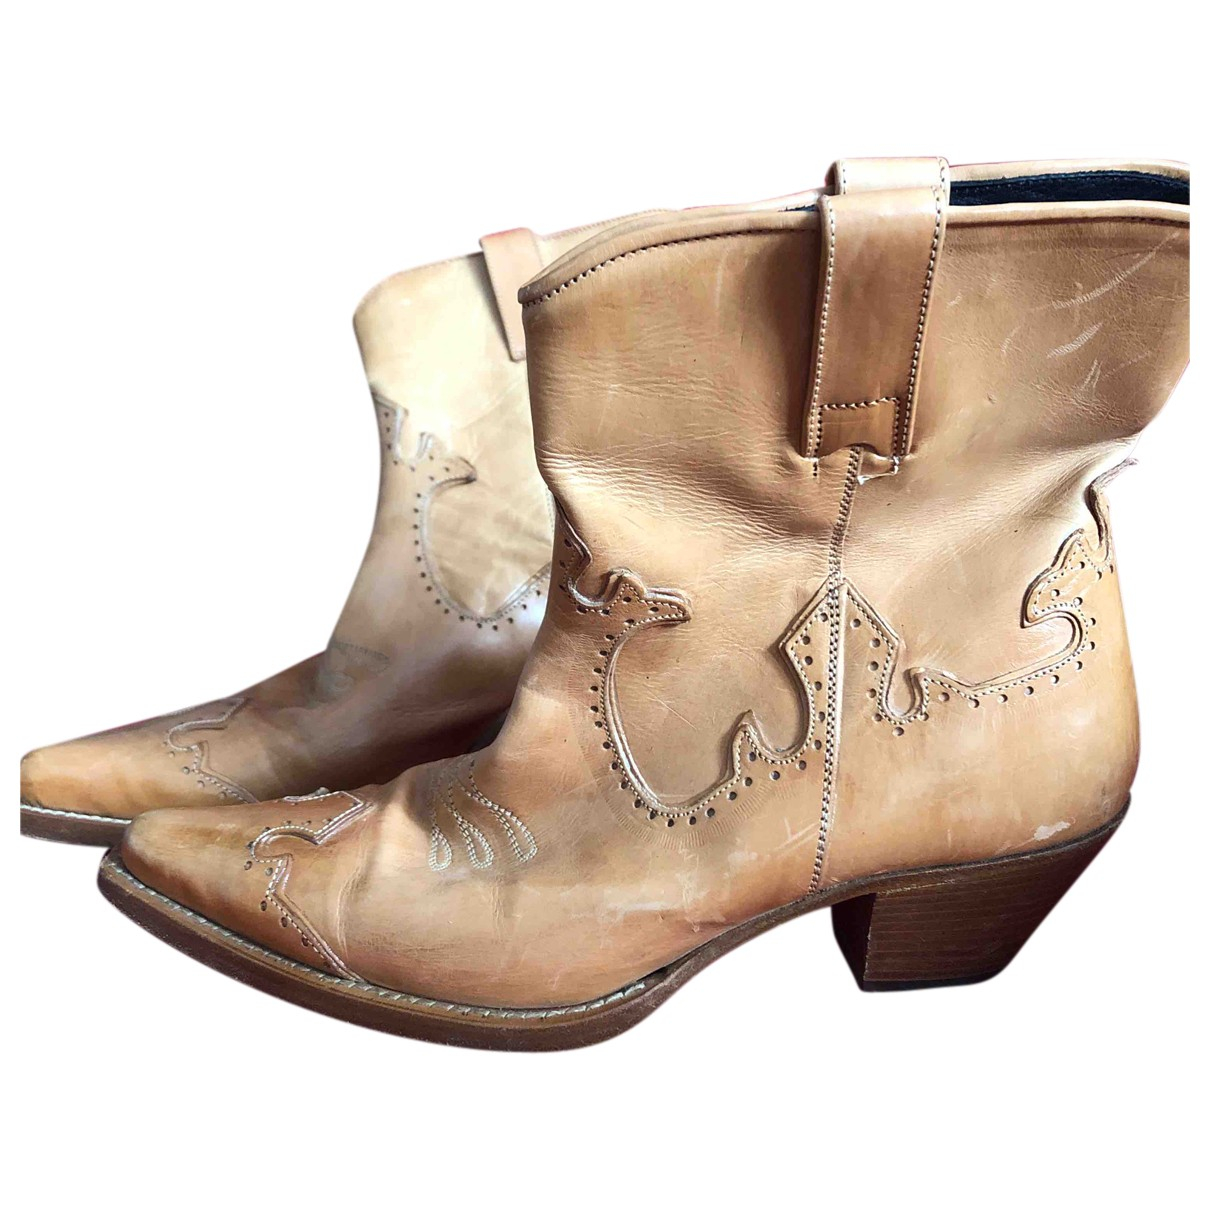 Ermanno Scervino N Camel Leather Boots for Women 37 EU